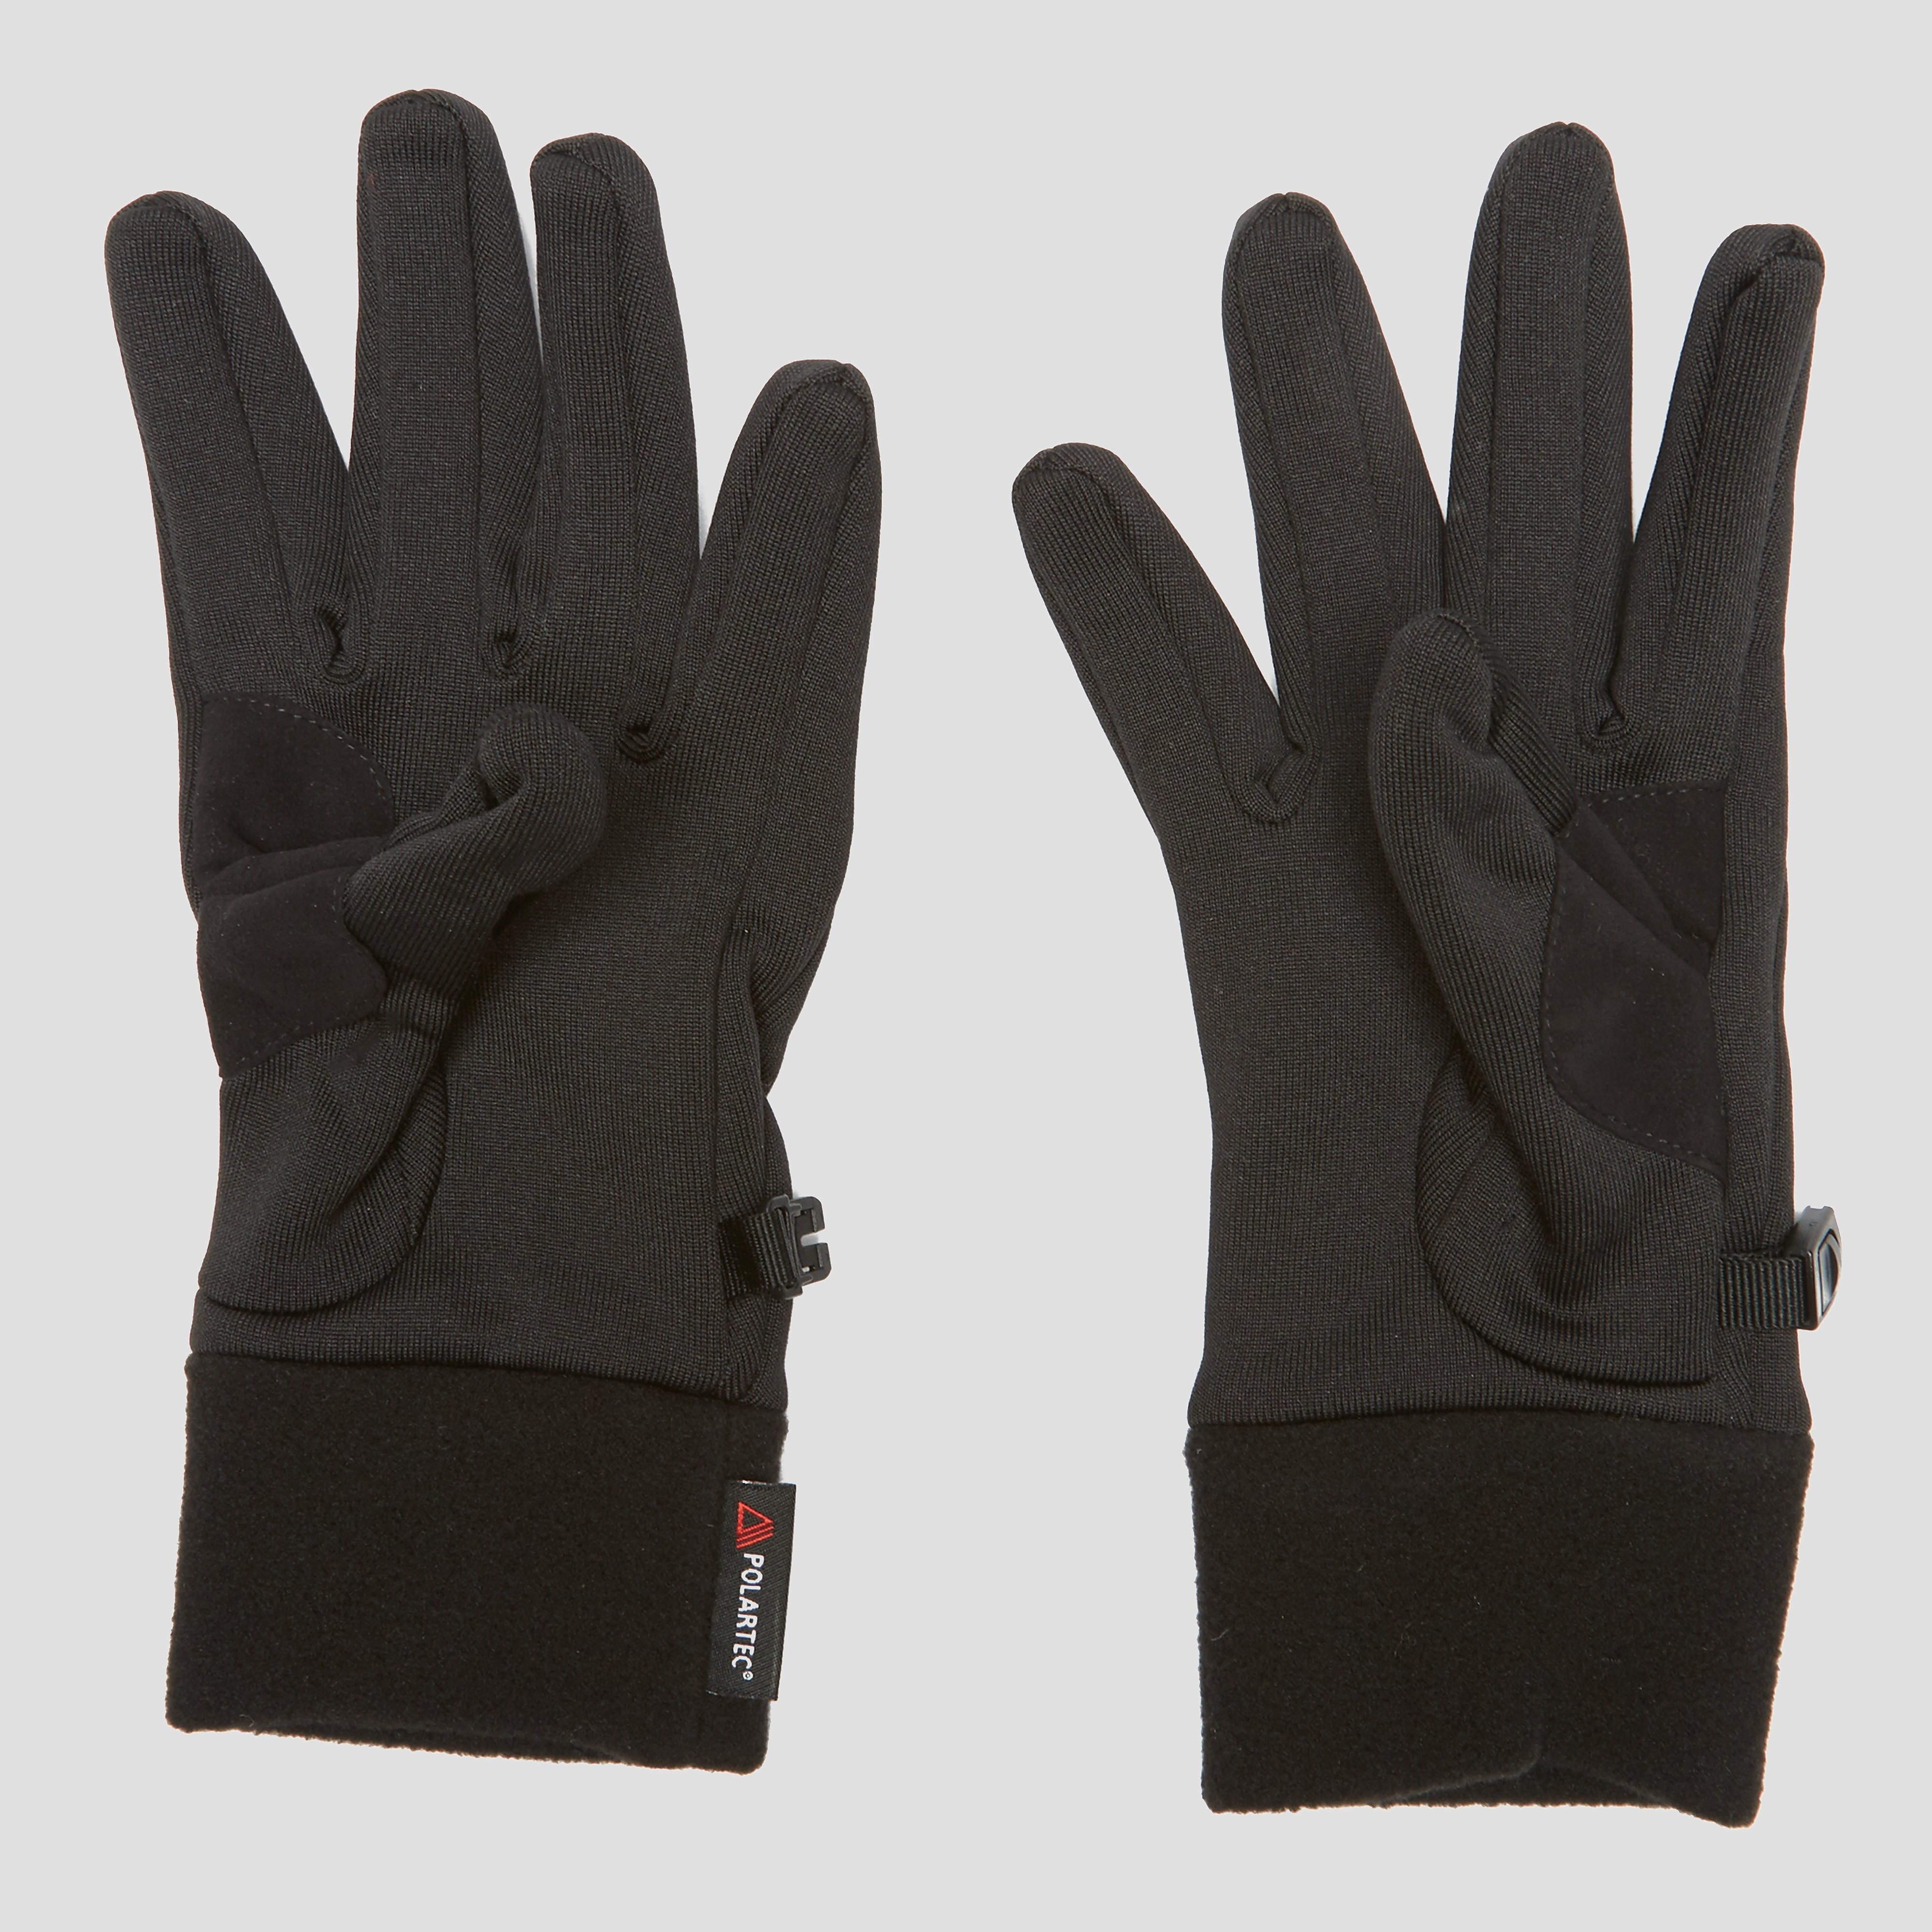 The North Face Women's Power Stretch Gloves